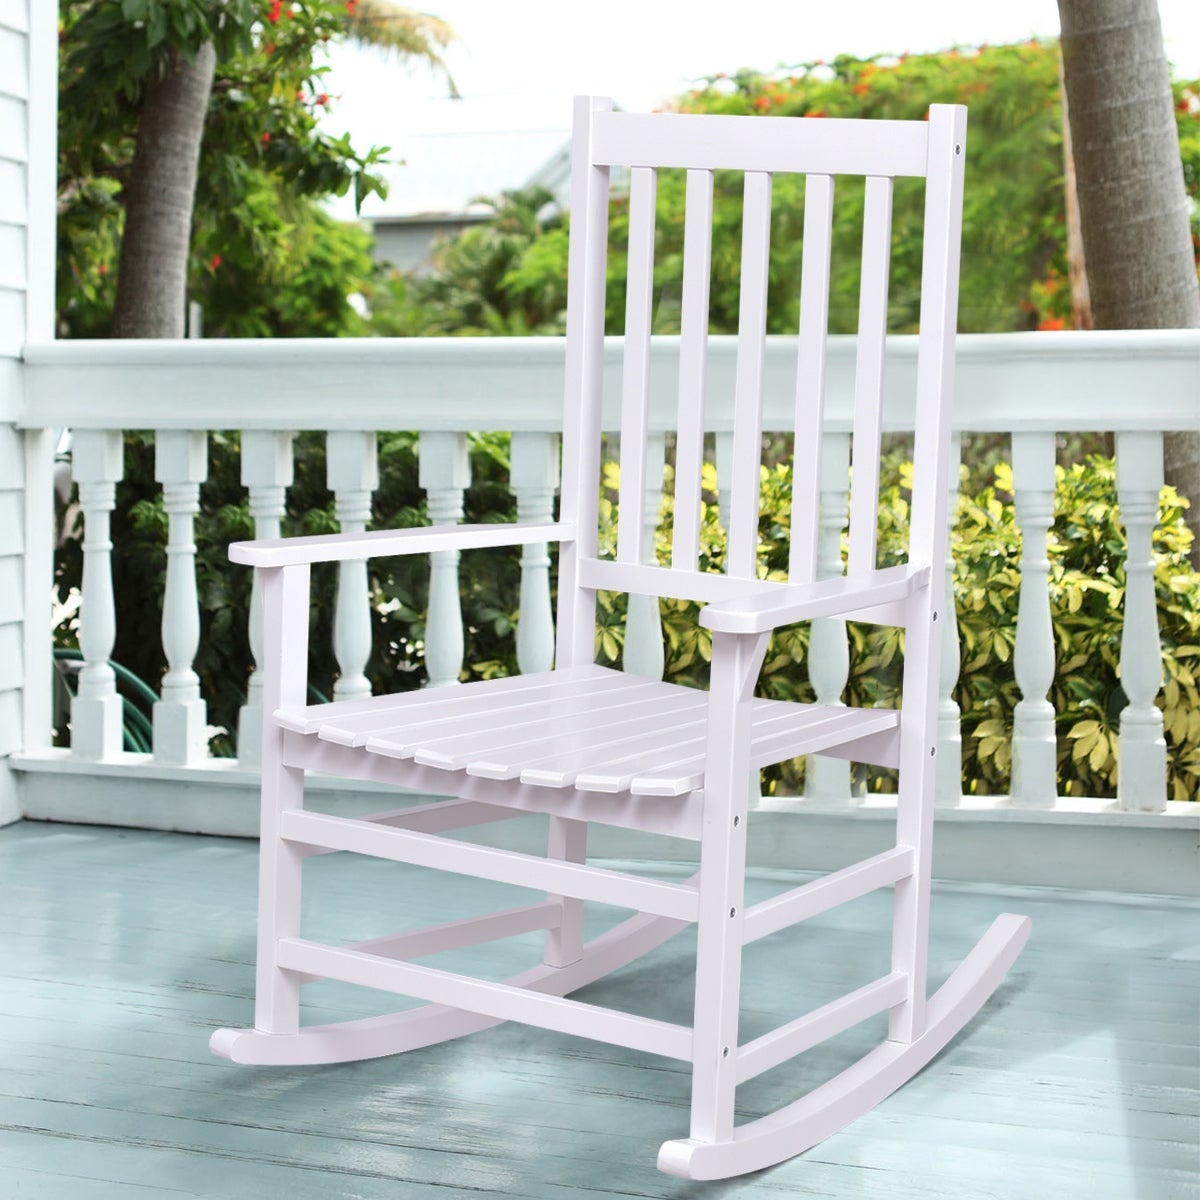 White Outdoor Patio Furniture.Costway Solid Wood Rocking Chair Rocker Porch Indoor Outdoor Patio Furniture White Single